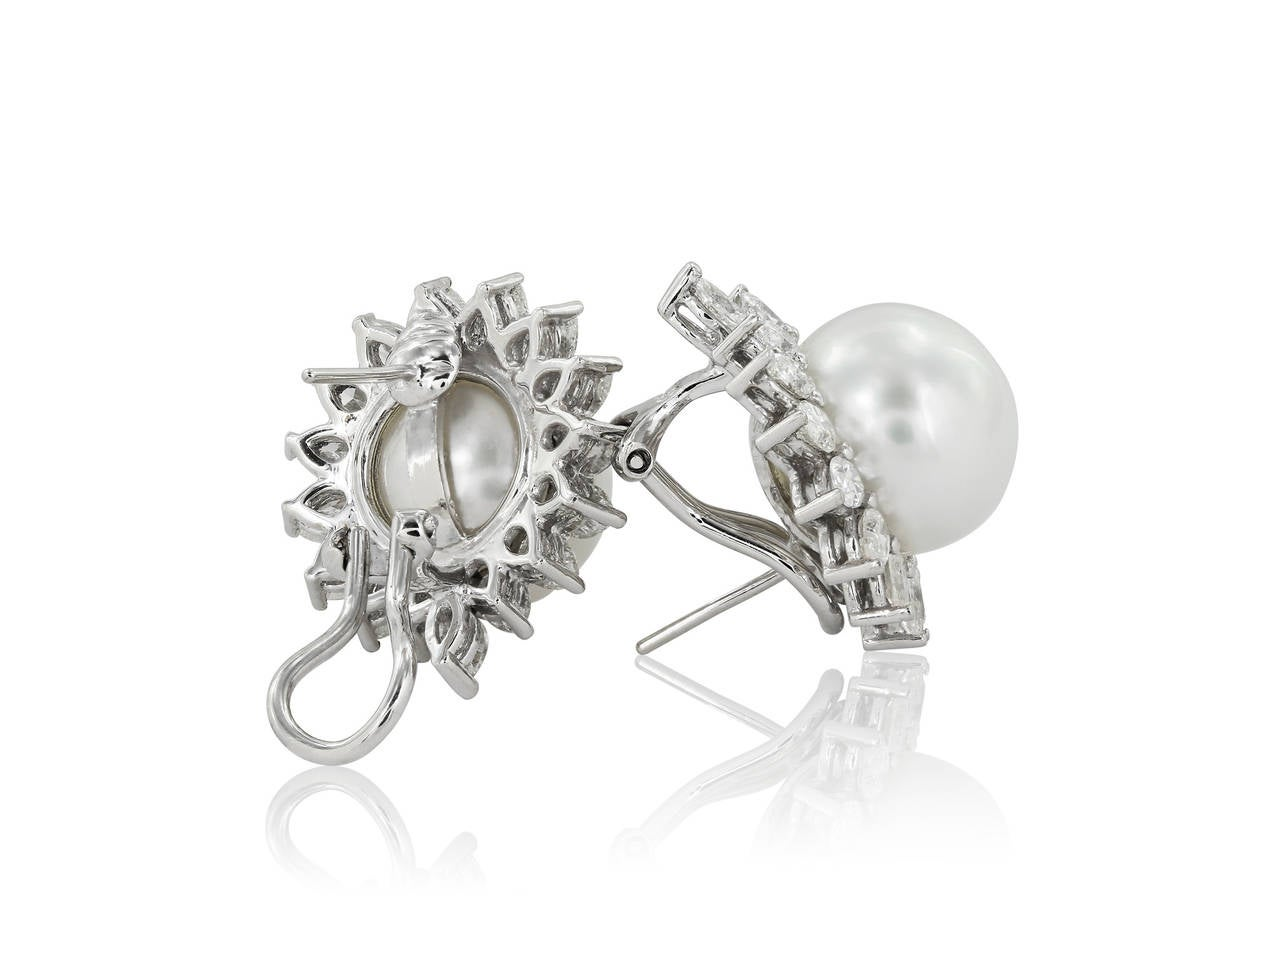 18 karat white gold earrings consisting of two 13mm south sea pearls surrounded by marquise shaped diamonds weighing 3.55 carats.